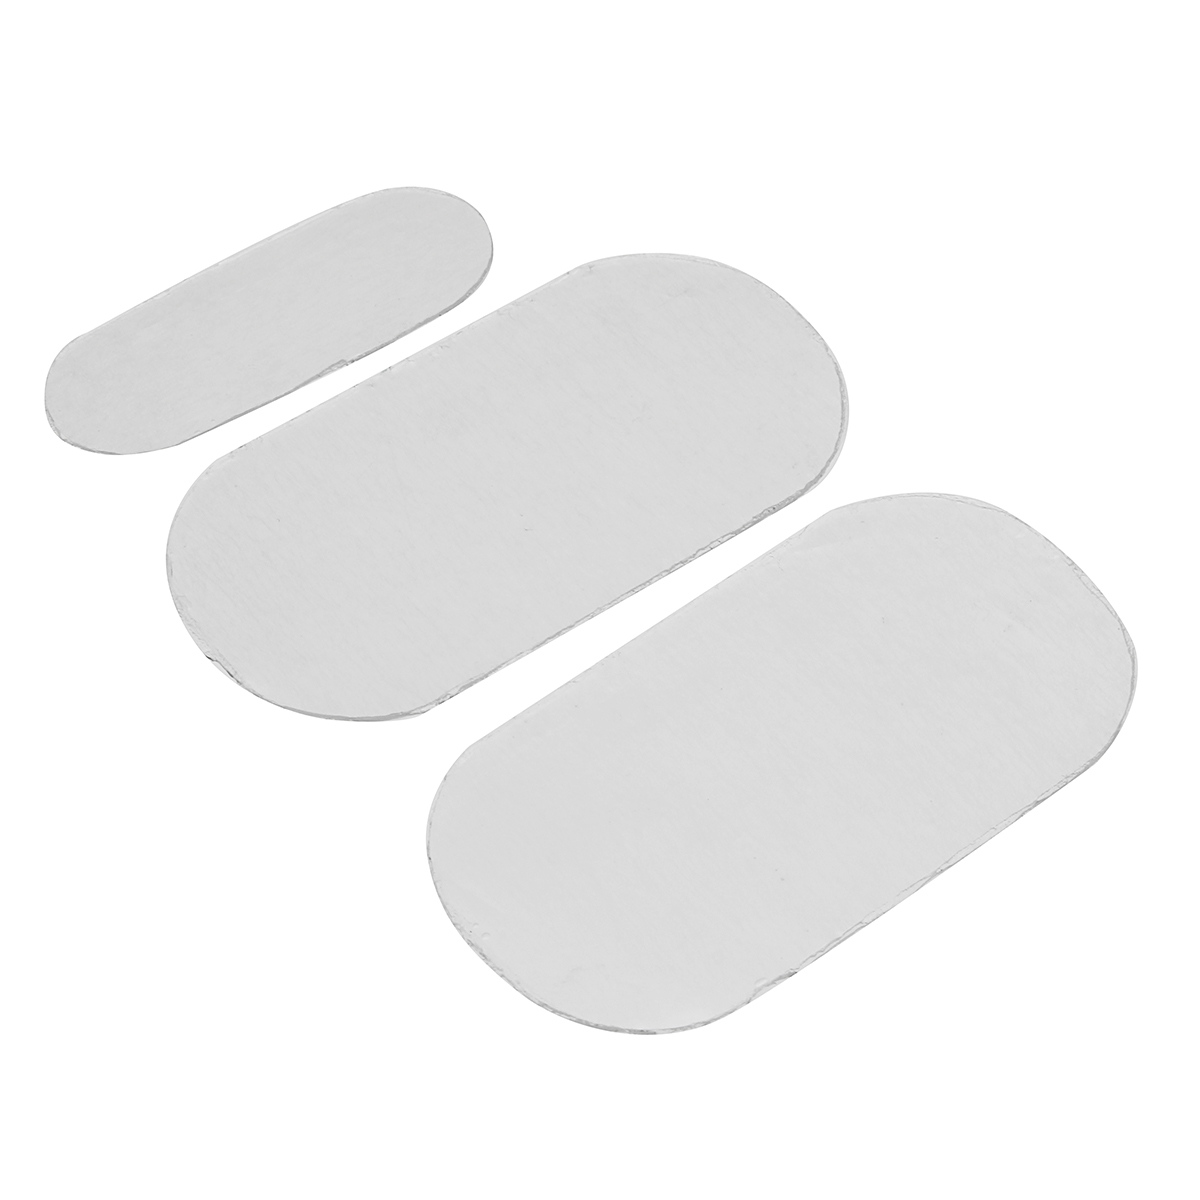 3pcs/Set Replacement Gel Sheet Pad For Hip Trainer Health Stick Muscle Fit Fitness